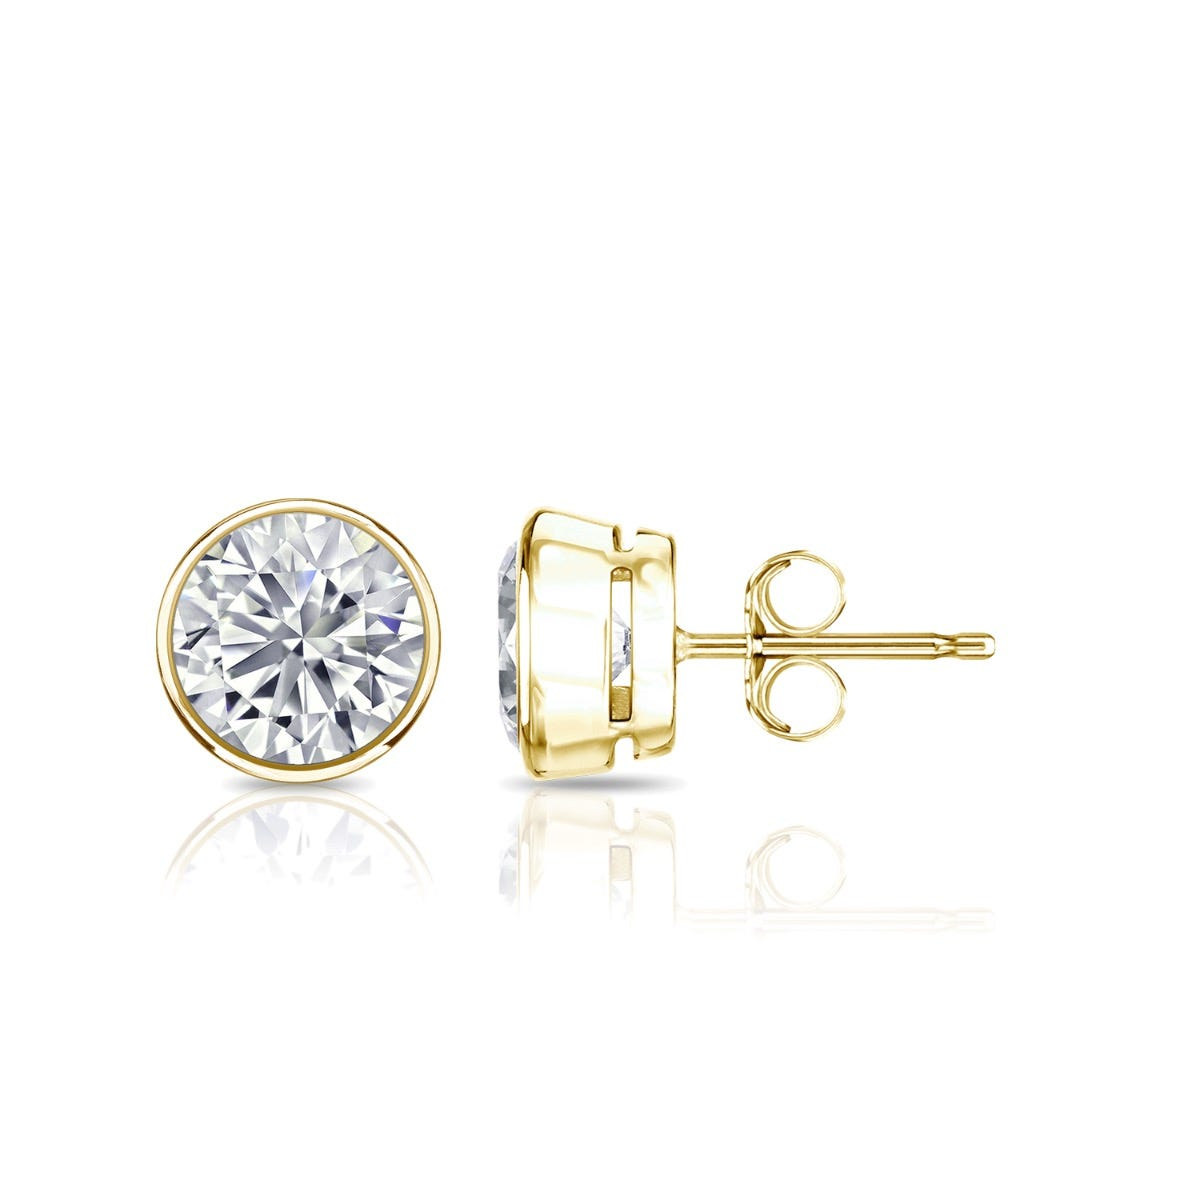 Diamond Round Bezel-Set 1ctw. Solitaire Stud (IJ-SI2) Earrings in 14K Yellow Gold